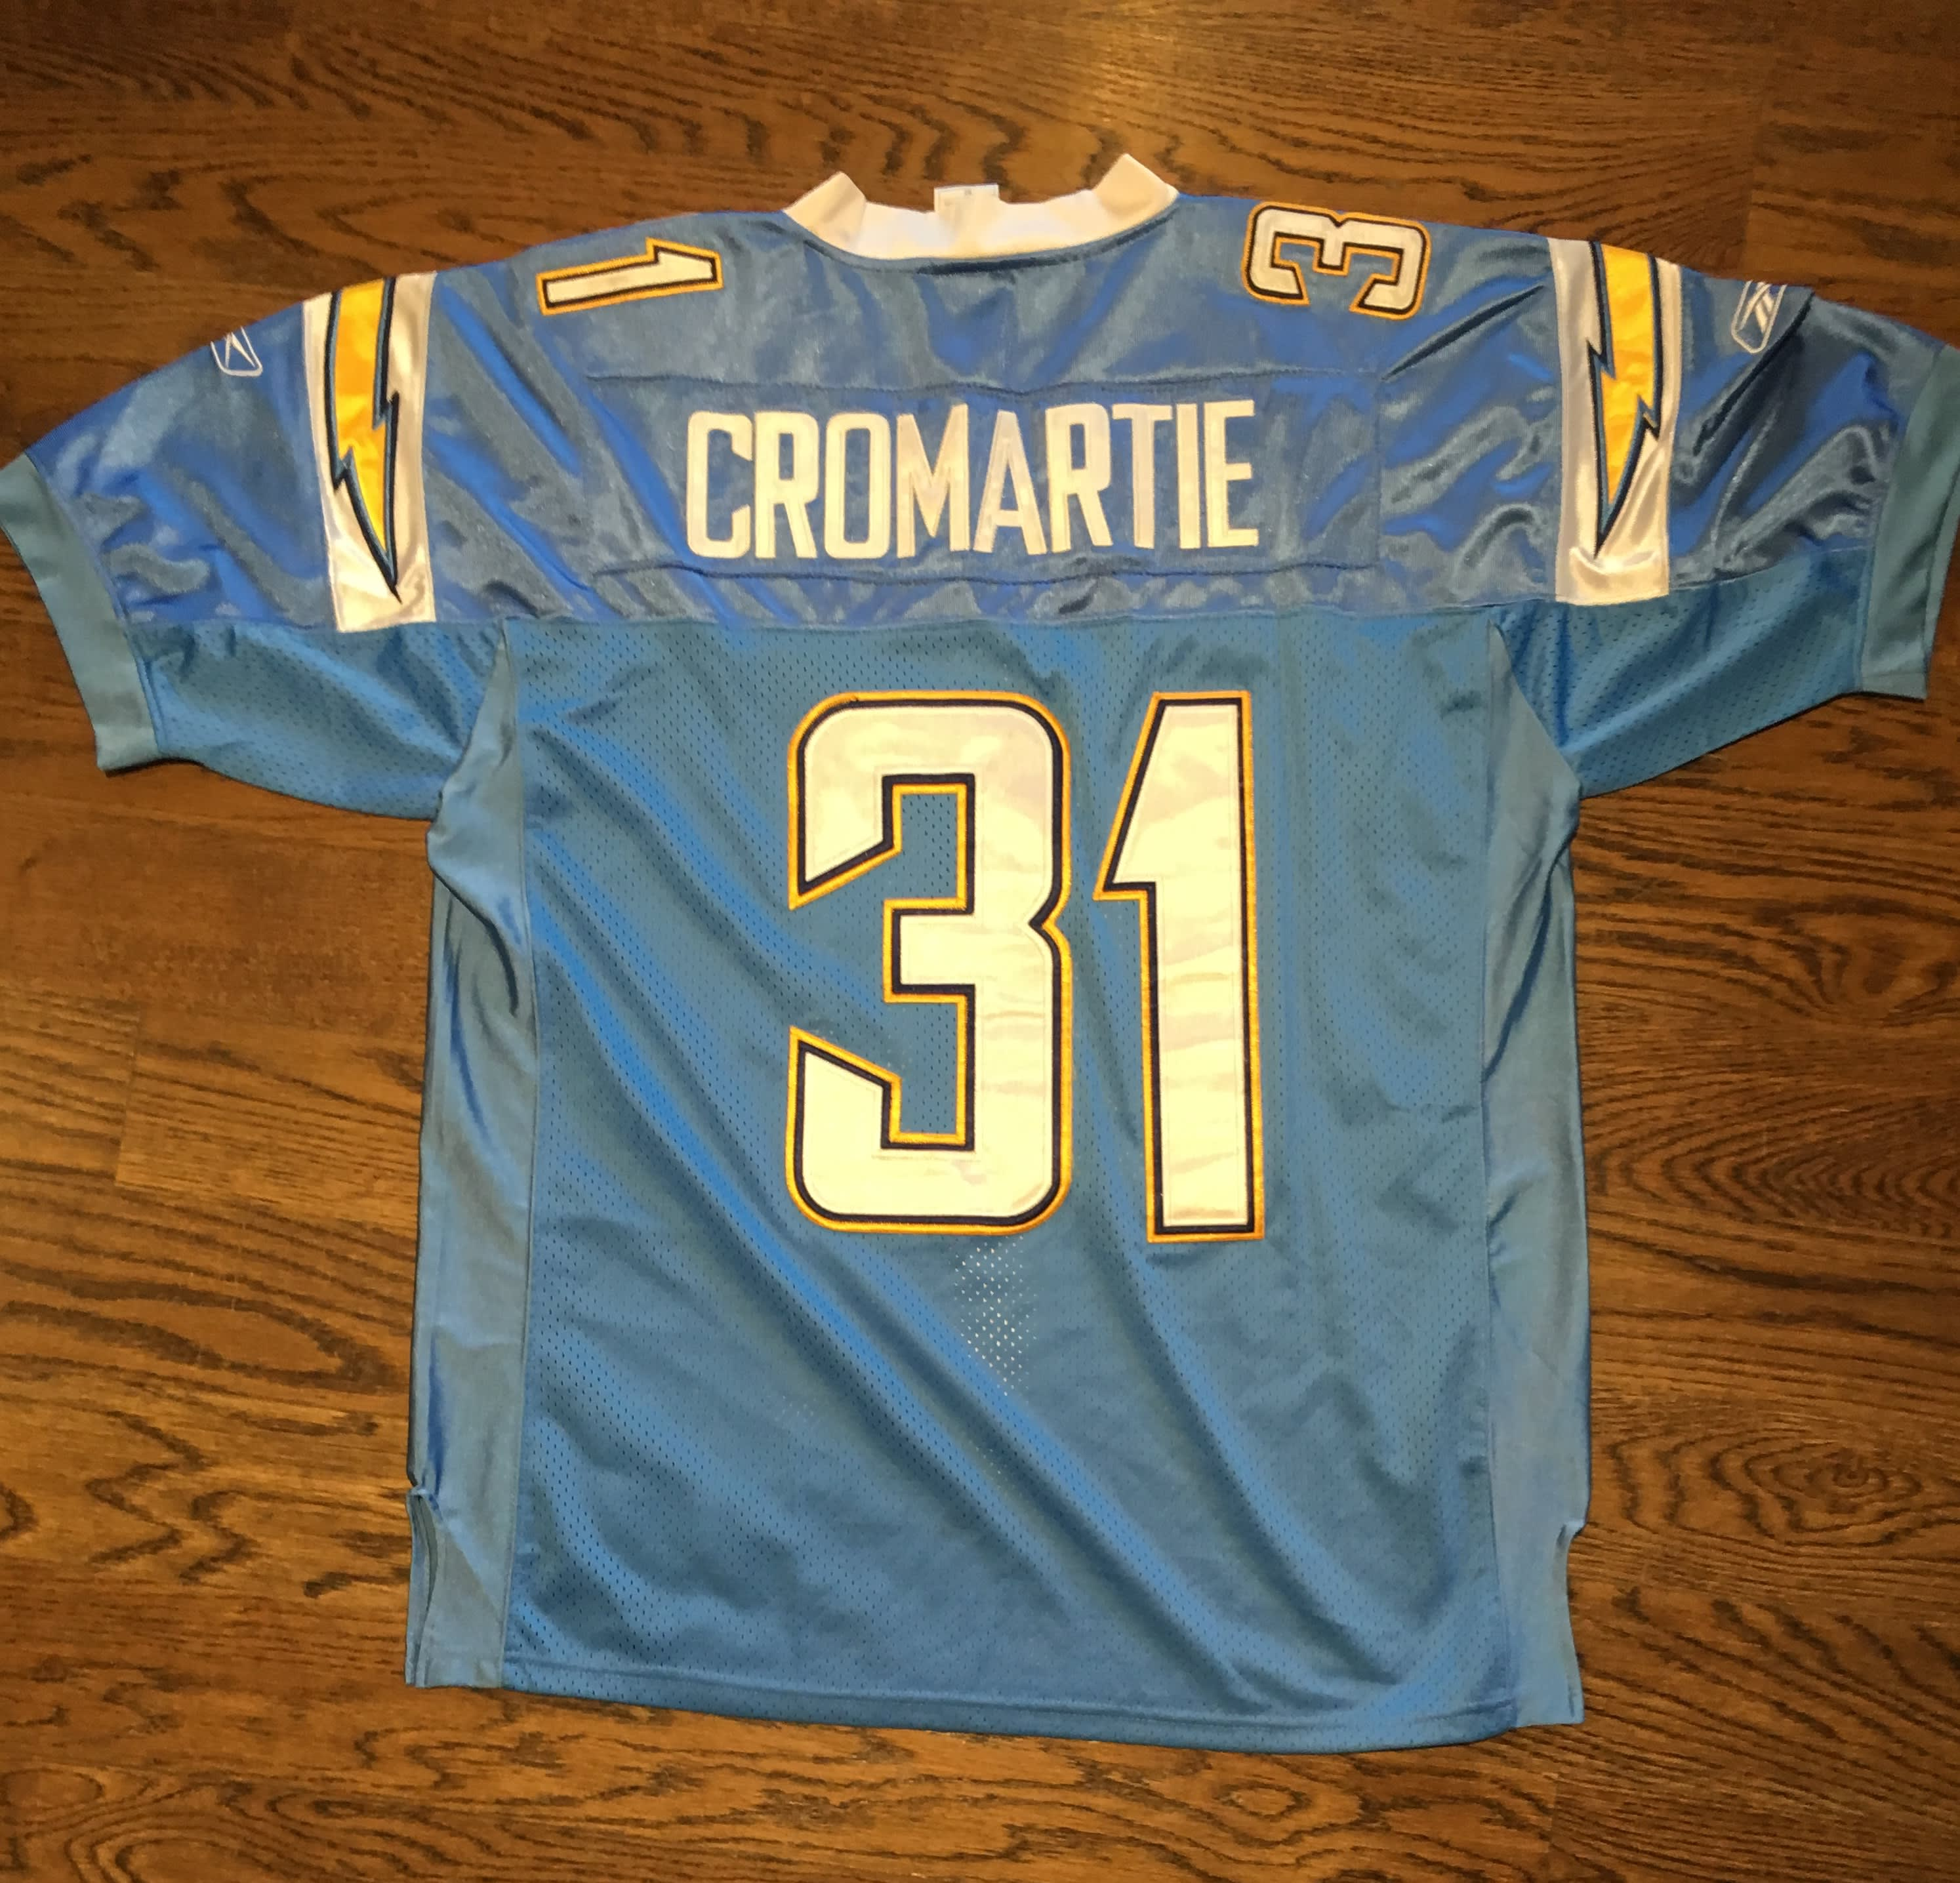 San Diego Chargers Dress: CROMARTIE SAN DIEGO CHARGERS JERSEY